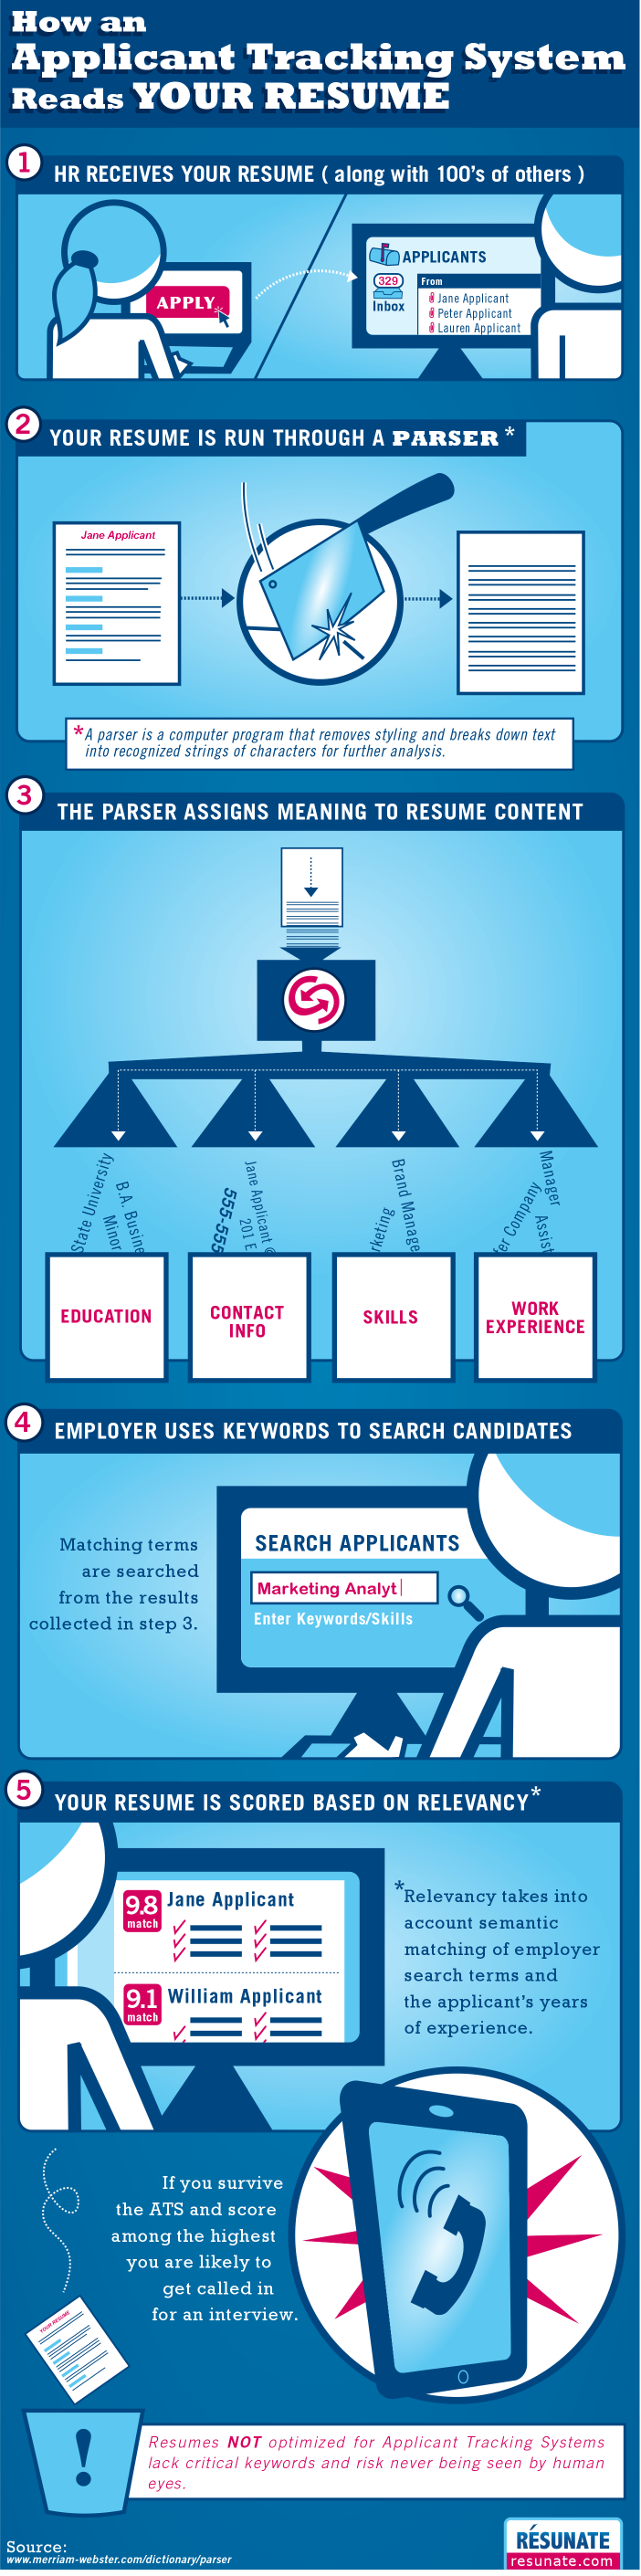 How to Optimize Your Resume: Start with the Right Keywords ...